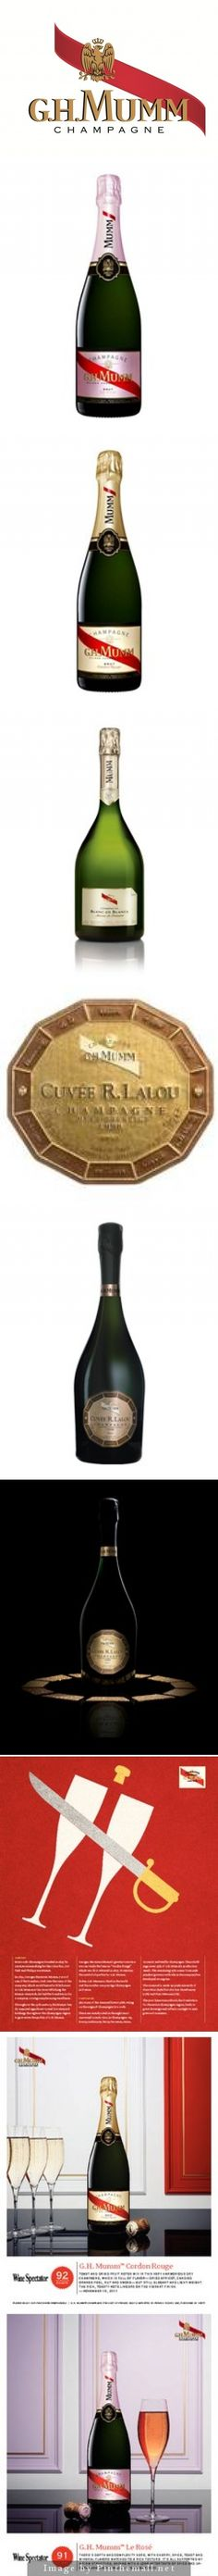 personalised GH MUMM replica champagne bottle label birthday any occasion